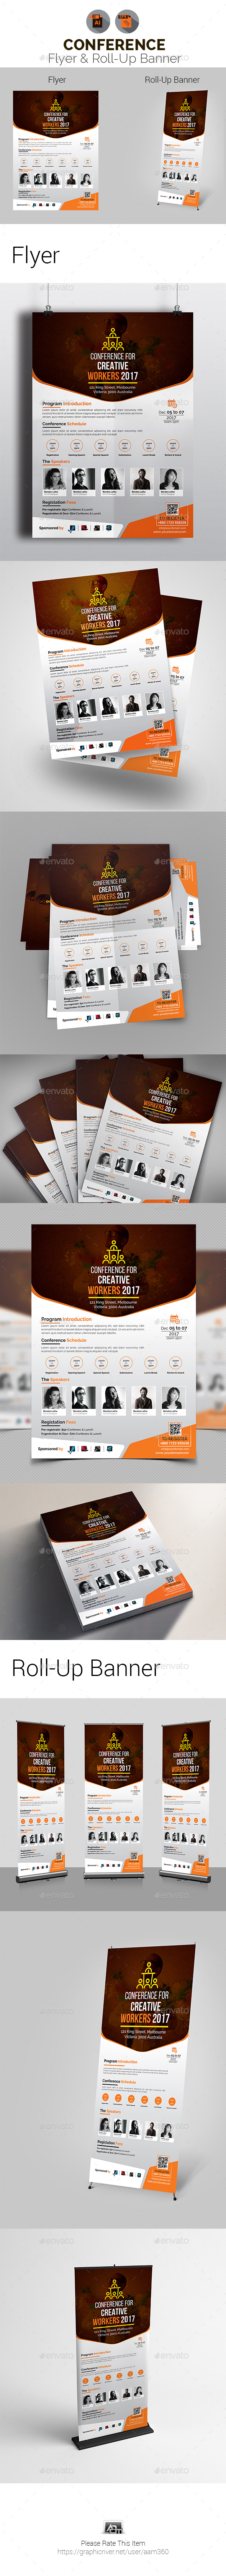 Conference Flyer & Roll-Up Bundle - Print Templates